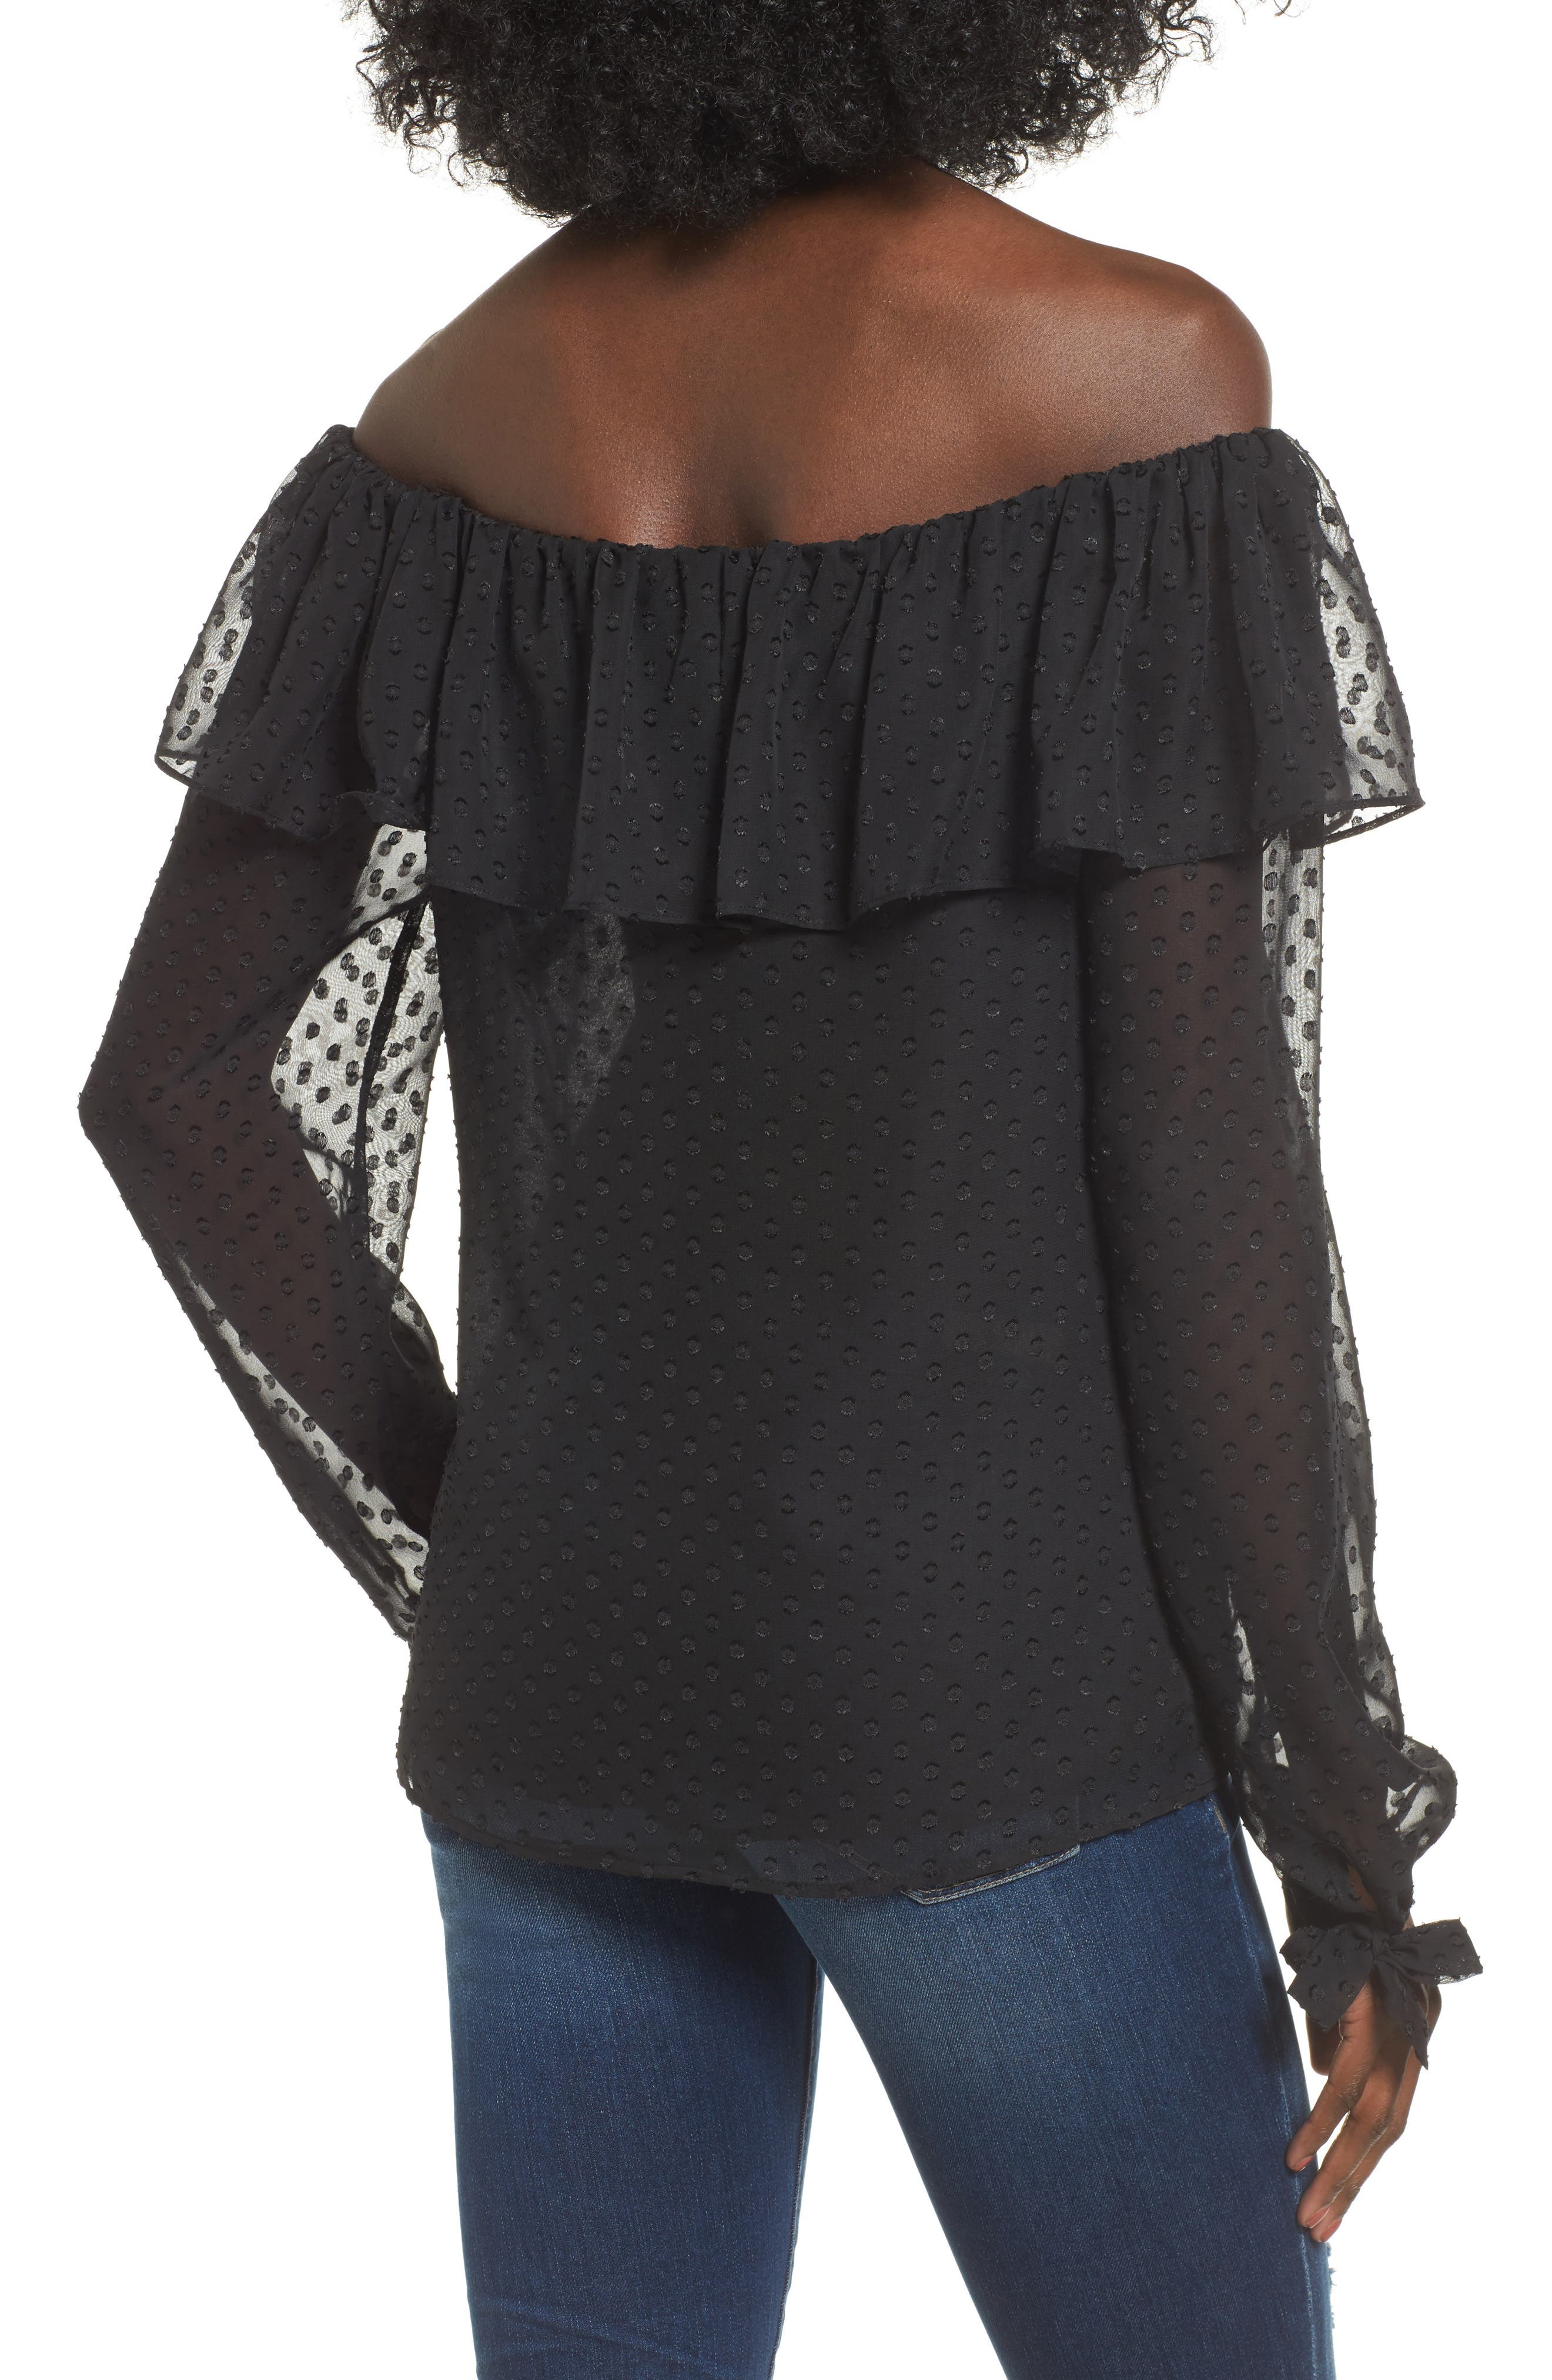 Kiere Ruffle Off the Shoulder Top,                             Alternate thumbnail 2, color,                             001